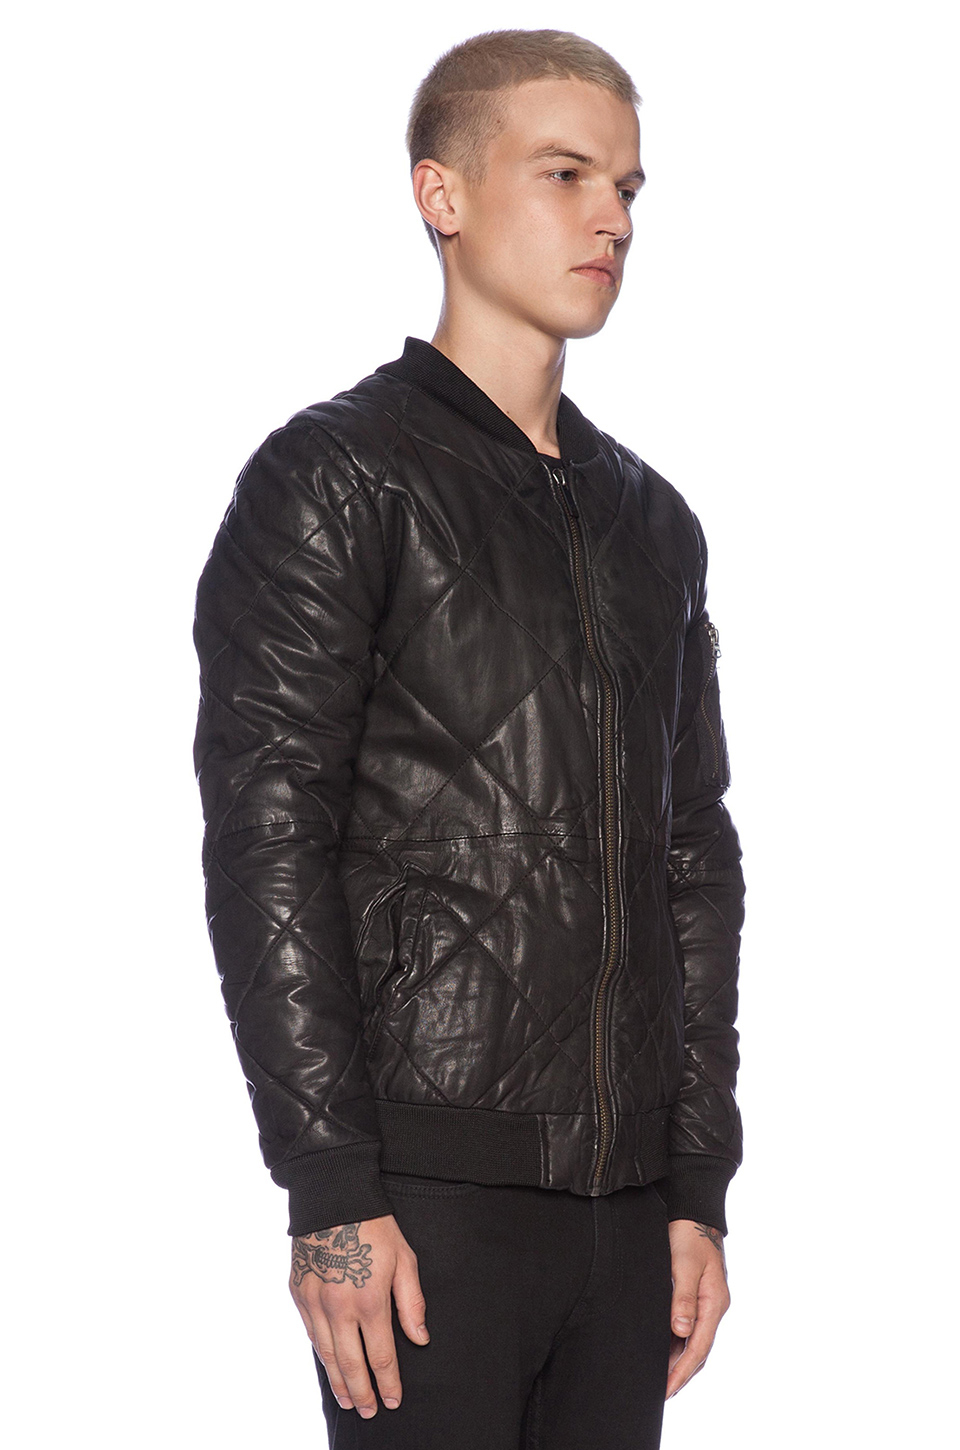 Scotch & soda Quilted Leather Bomber Jacket in Black for Men | Lyst : scotch and soda quilted leather jacket - Adamdwight.com